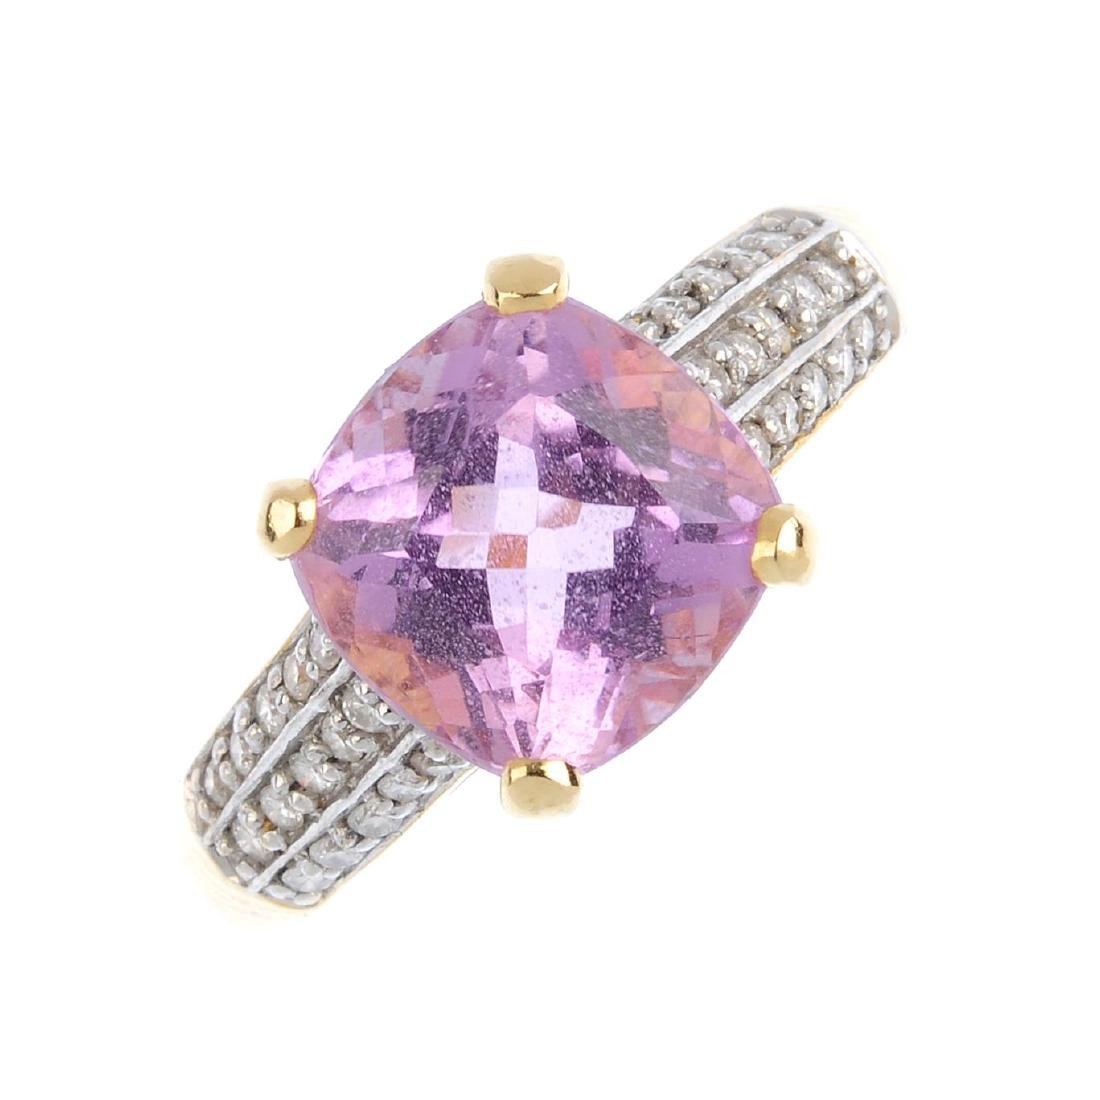 An 18ct gold kunzite and diamond ring. The